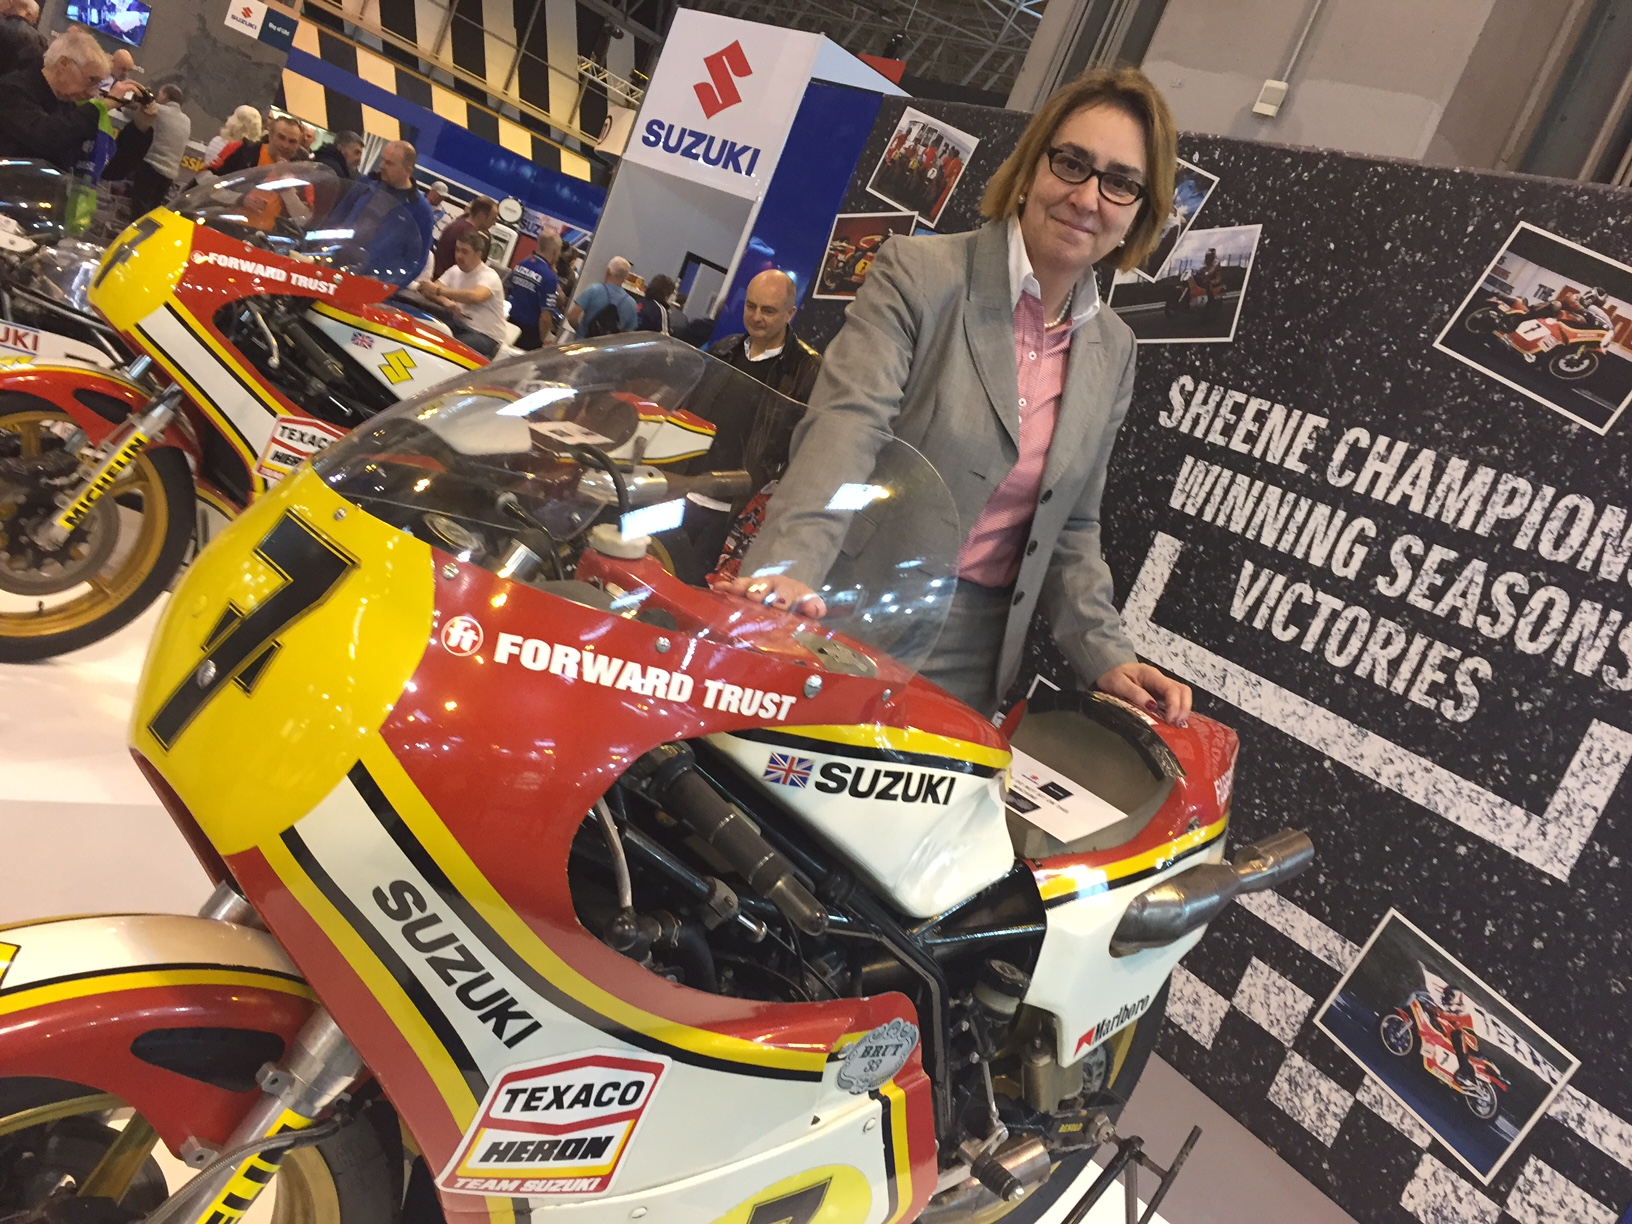 2016 news nov nec bike show sheene no7 worth